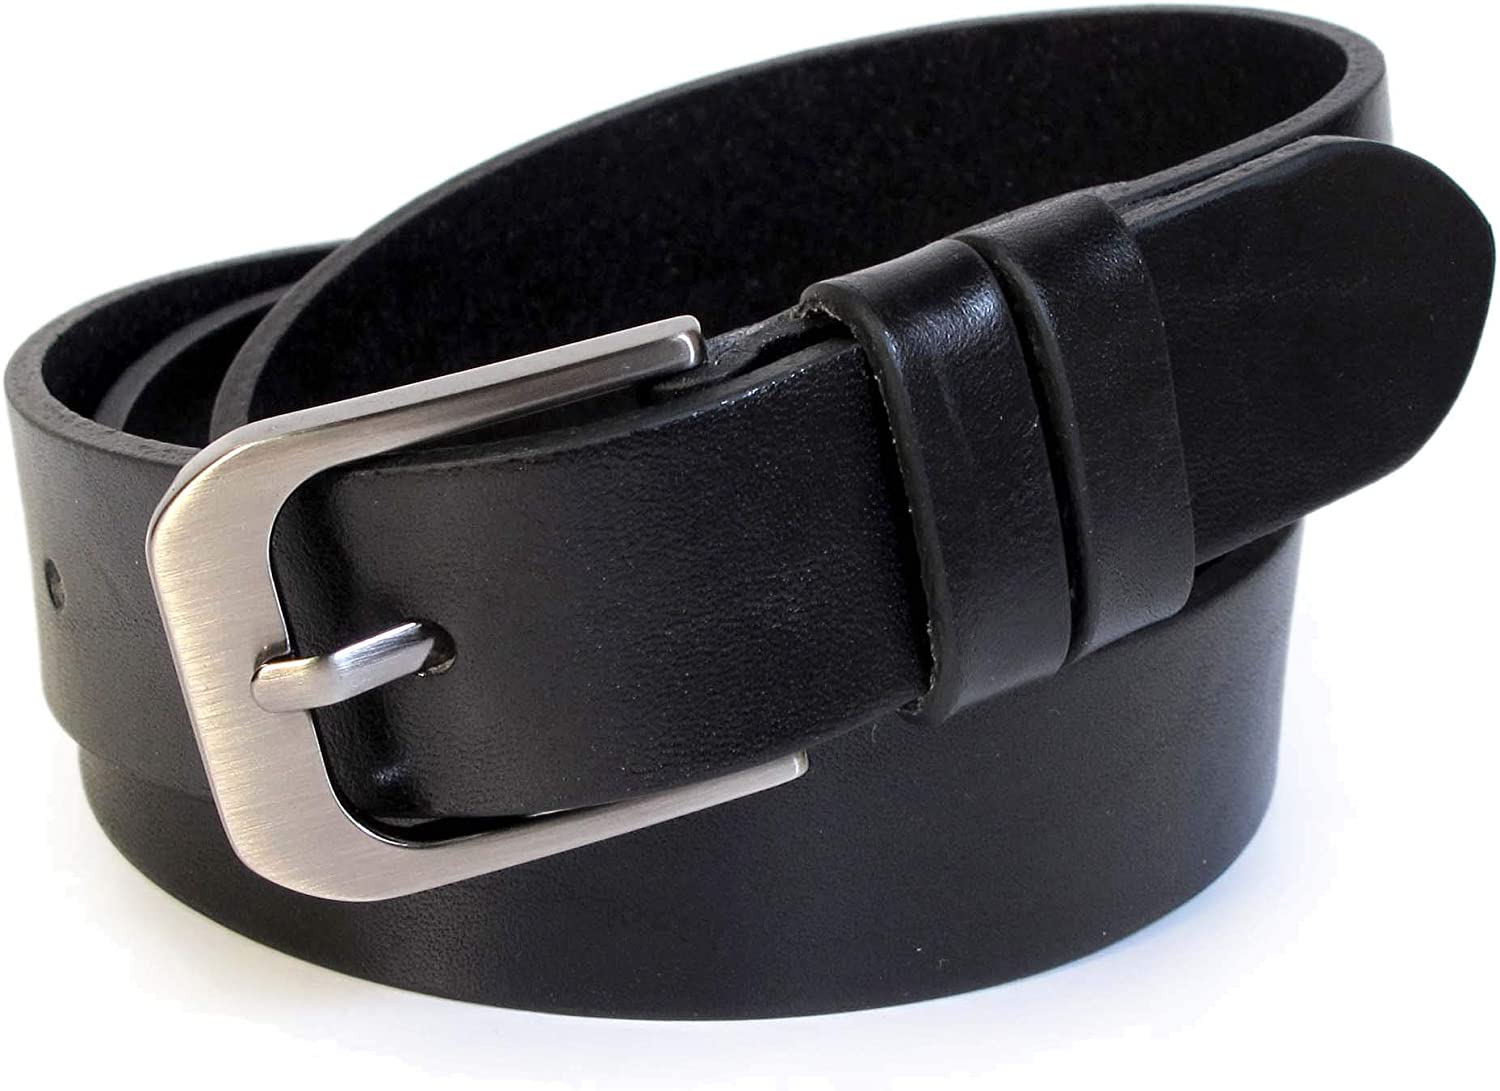 (CW2121) Womens Black Belt 100% Real Leather Size 28,30,32,34,36  Wide 1  Solid